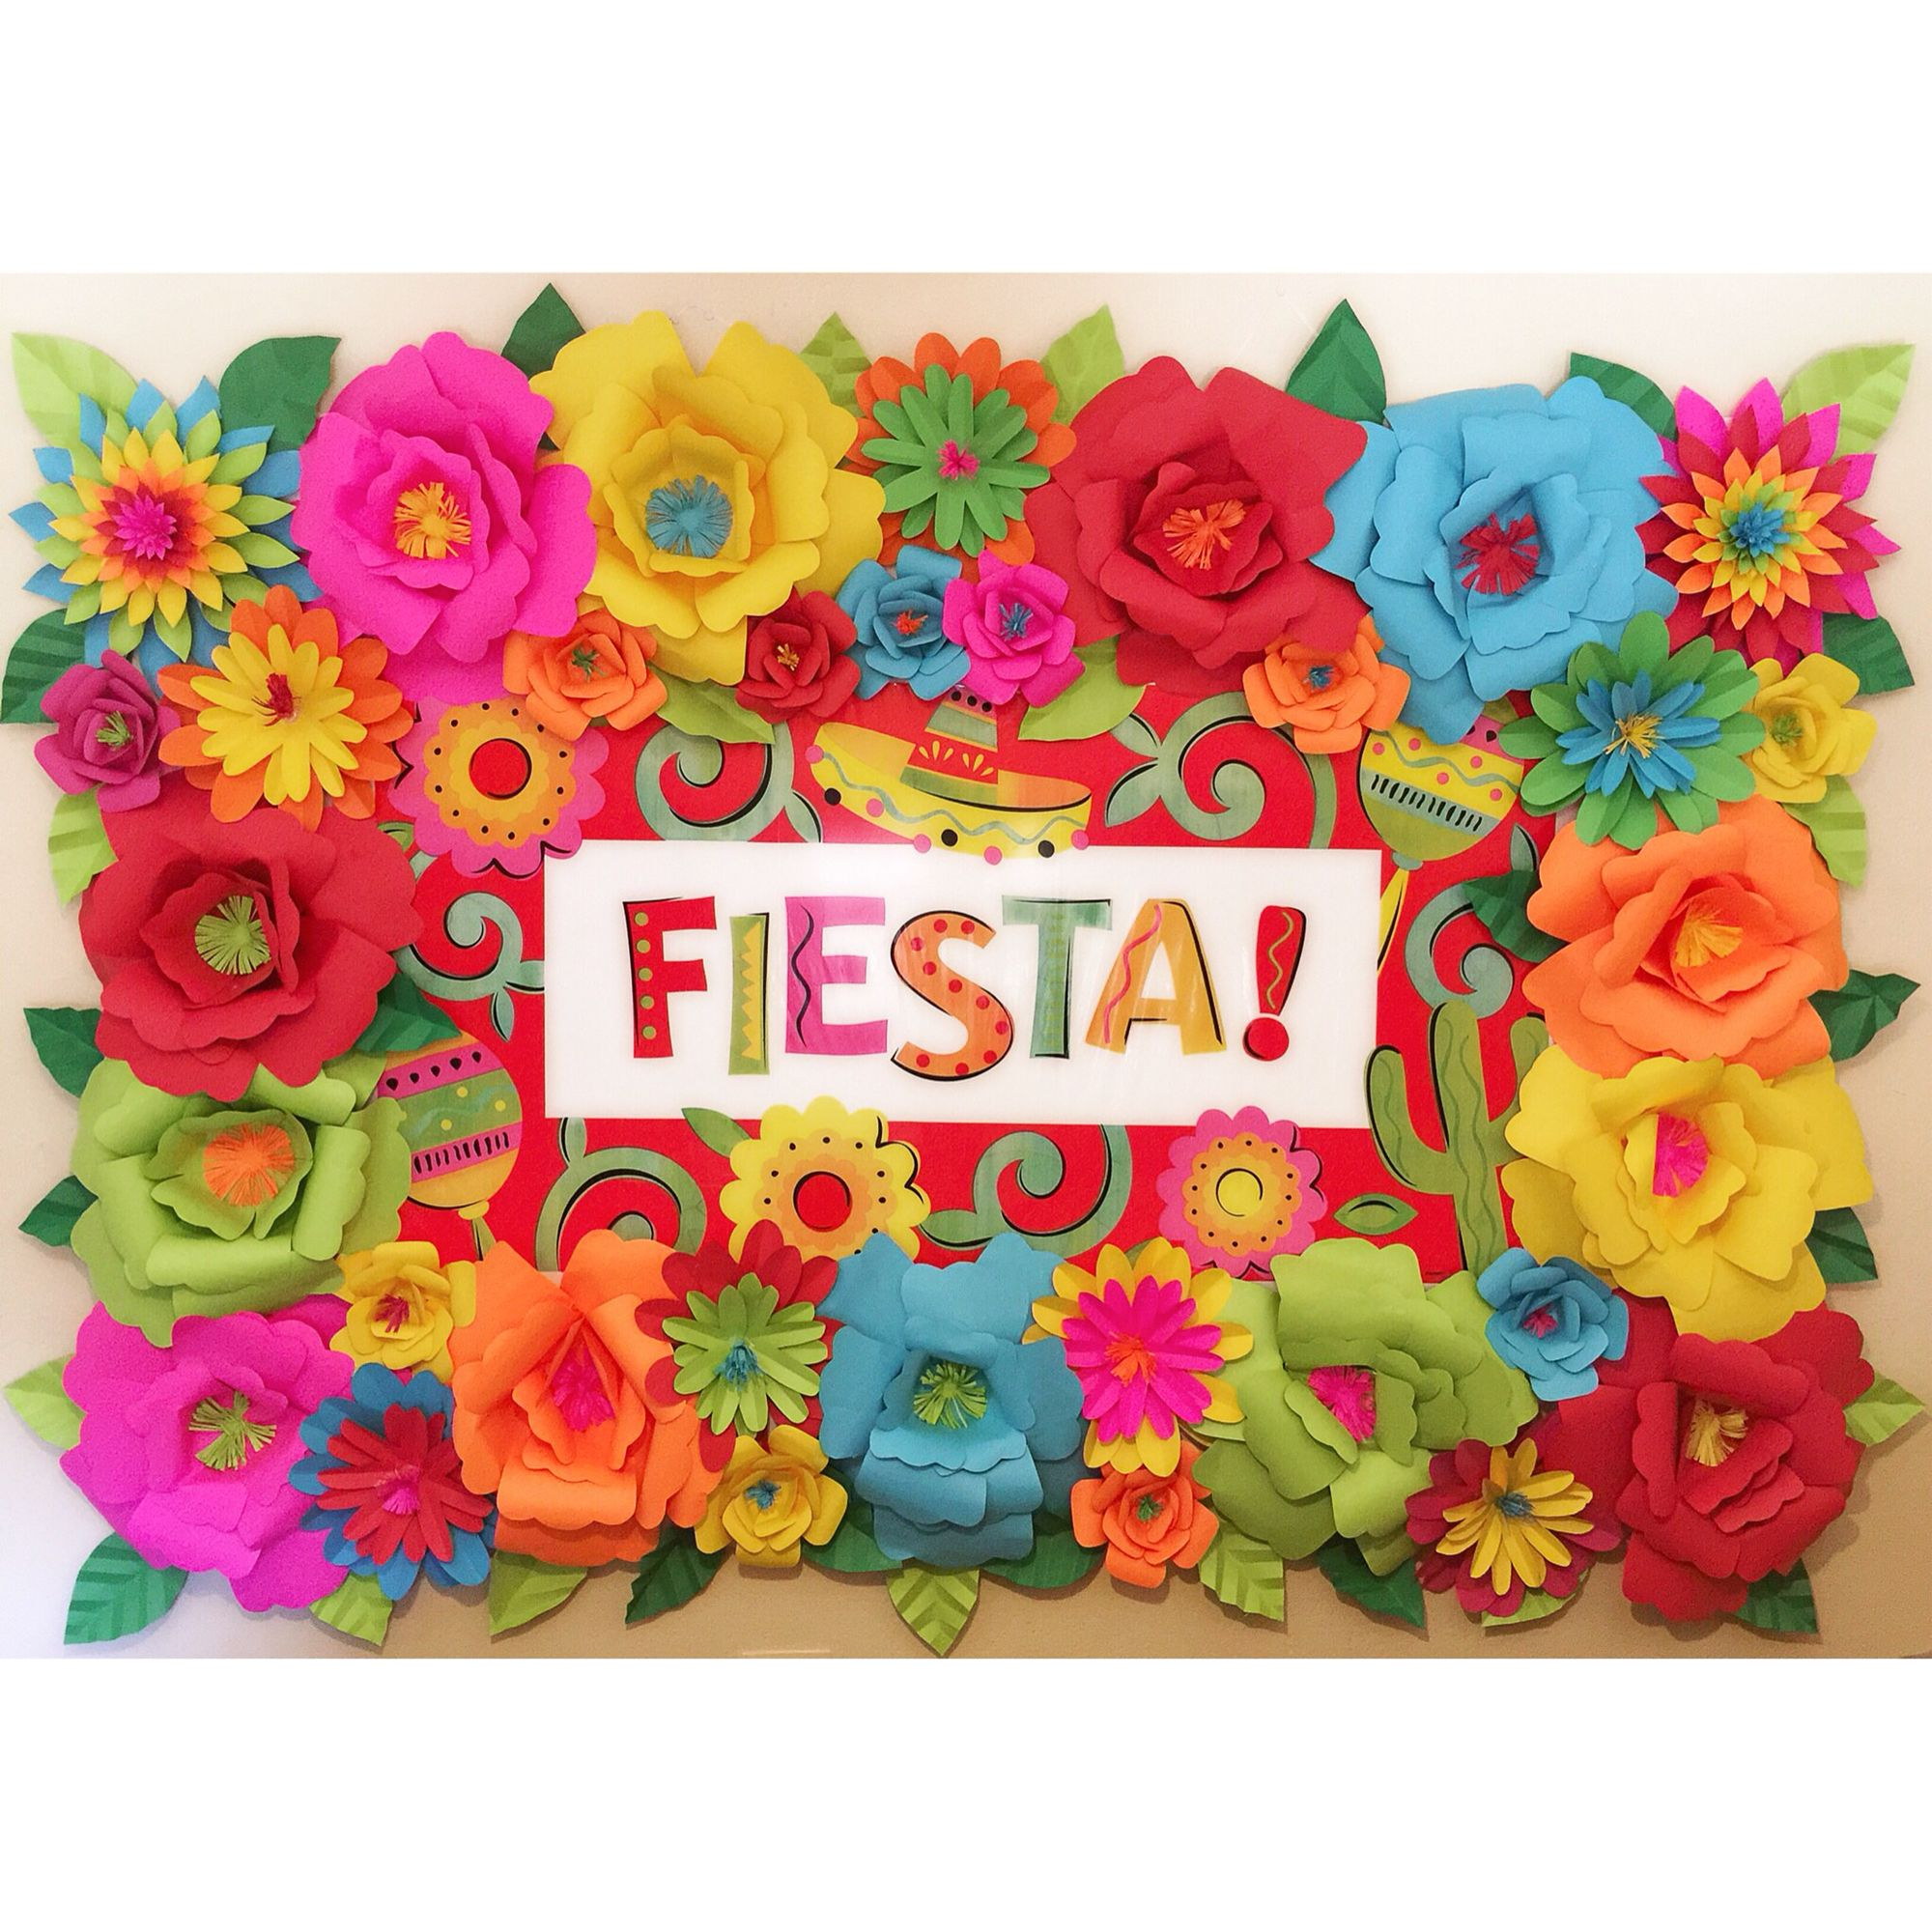 il birthday backdrop banner fullxfull p decor fiesta party decorations mexican